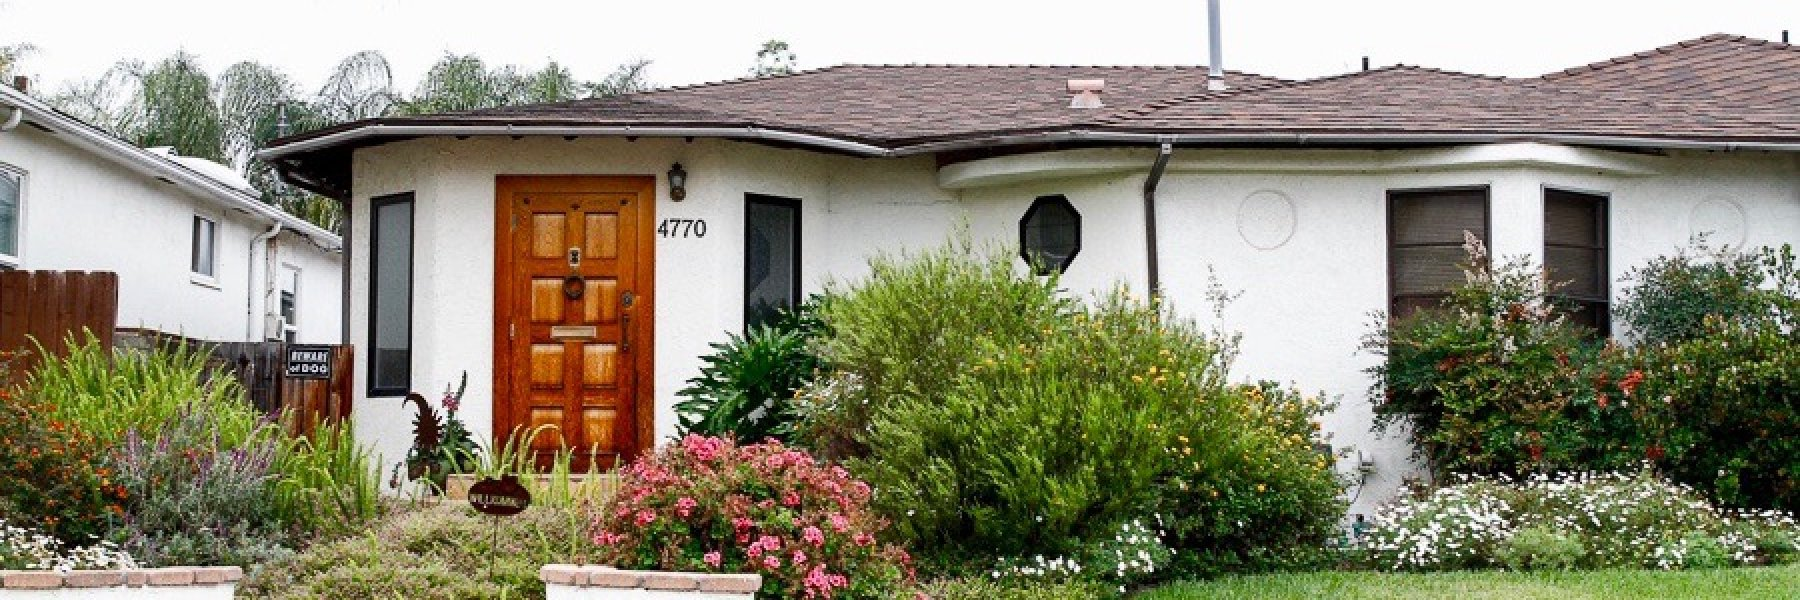 Talmadge is a community of homes in San Diego California